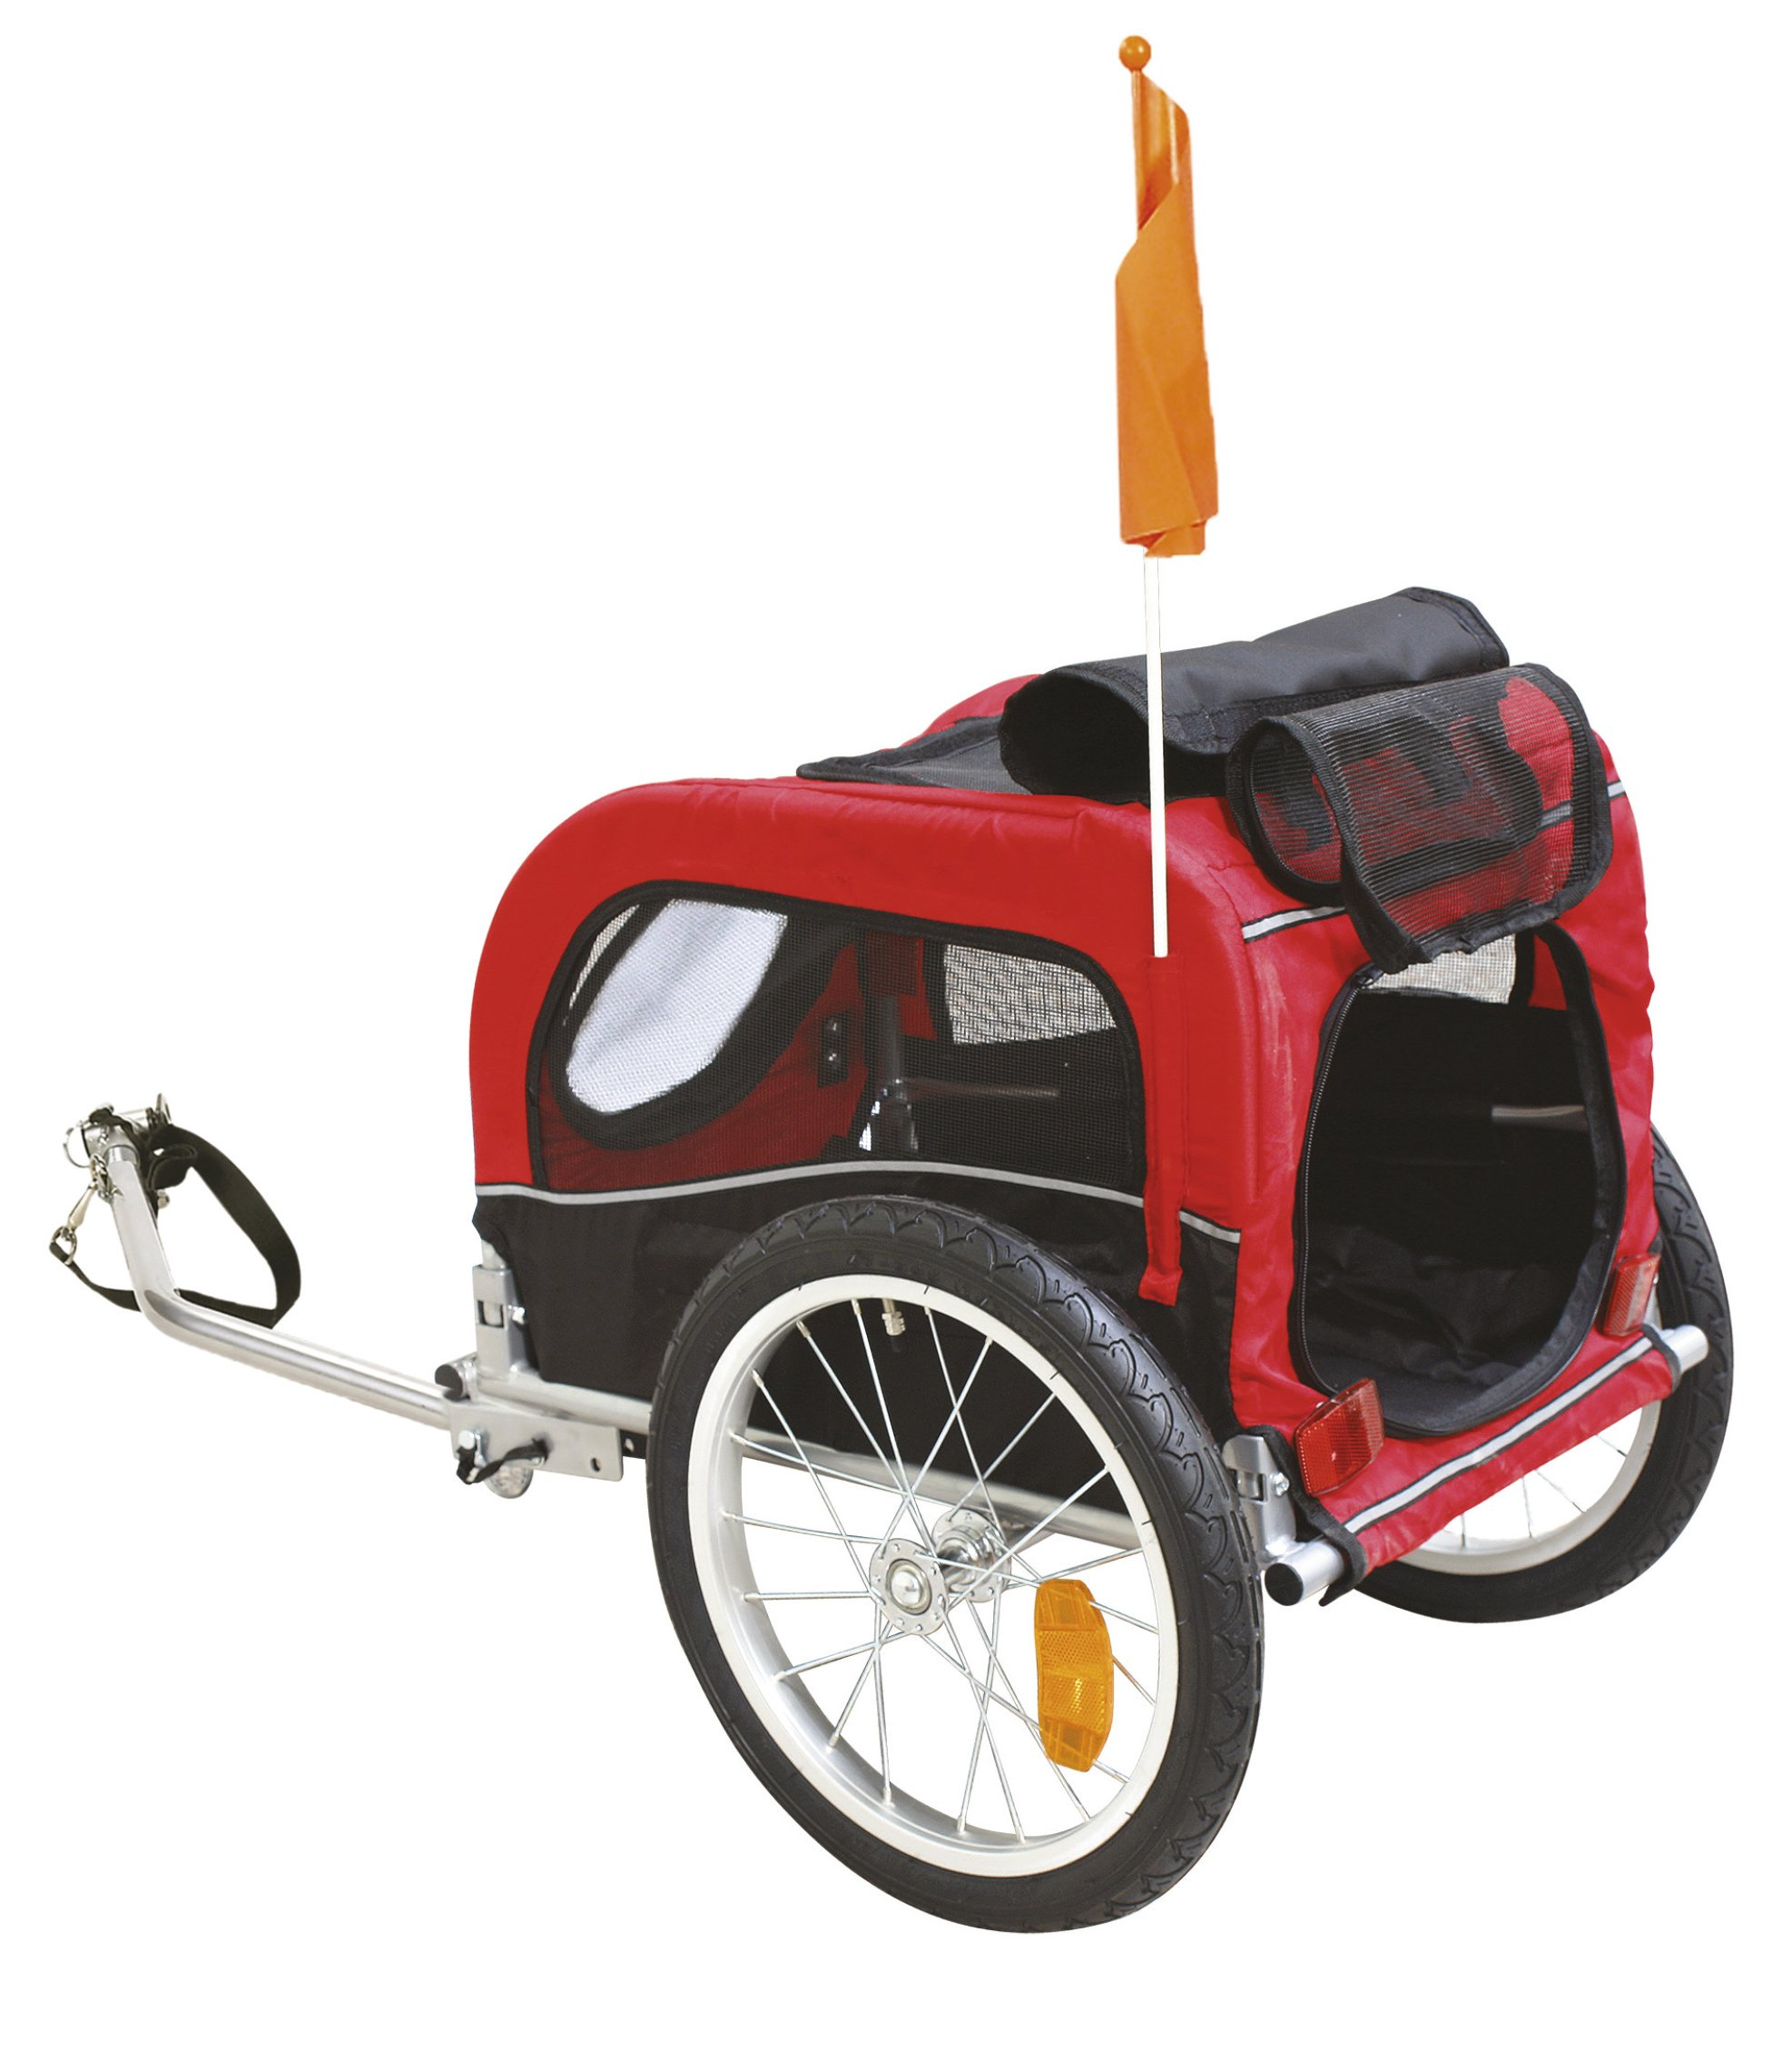 CROCI Bicycle Practical Trailer